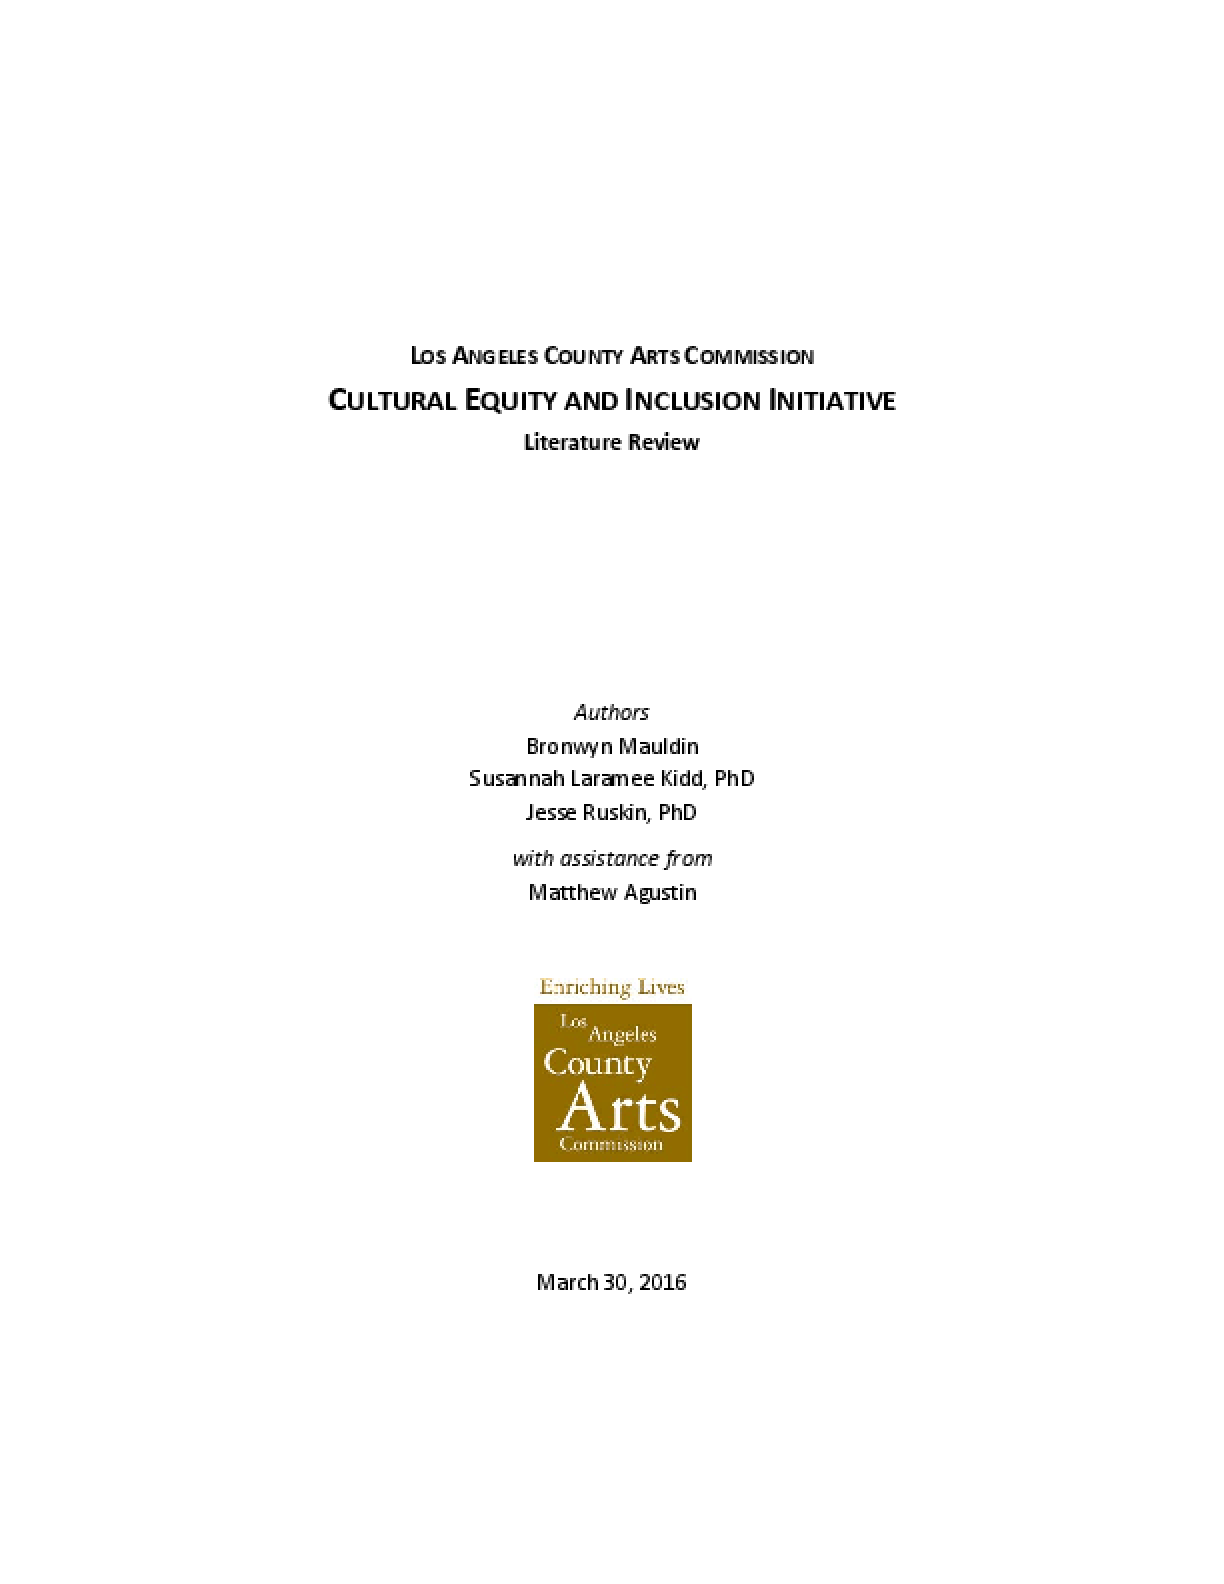 Los Angeles County Arts Commission Cultural Equity and Inclusion Initiative Literature Review